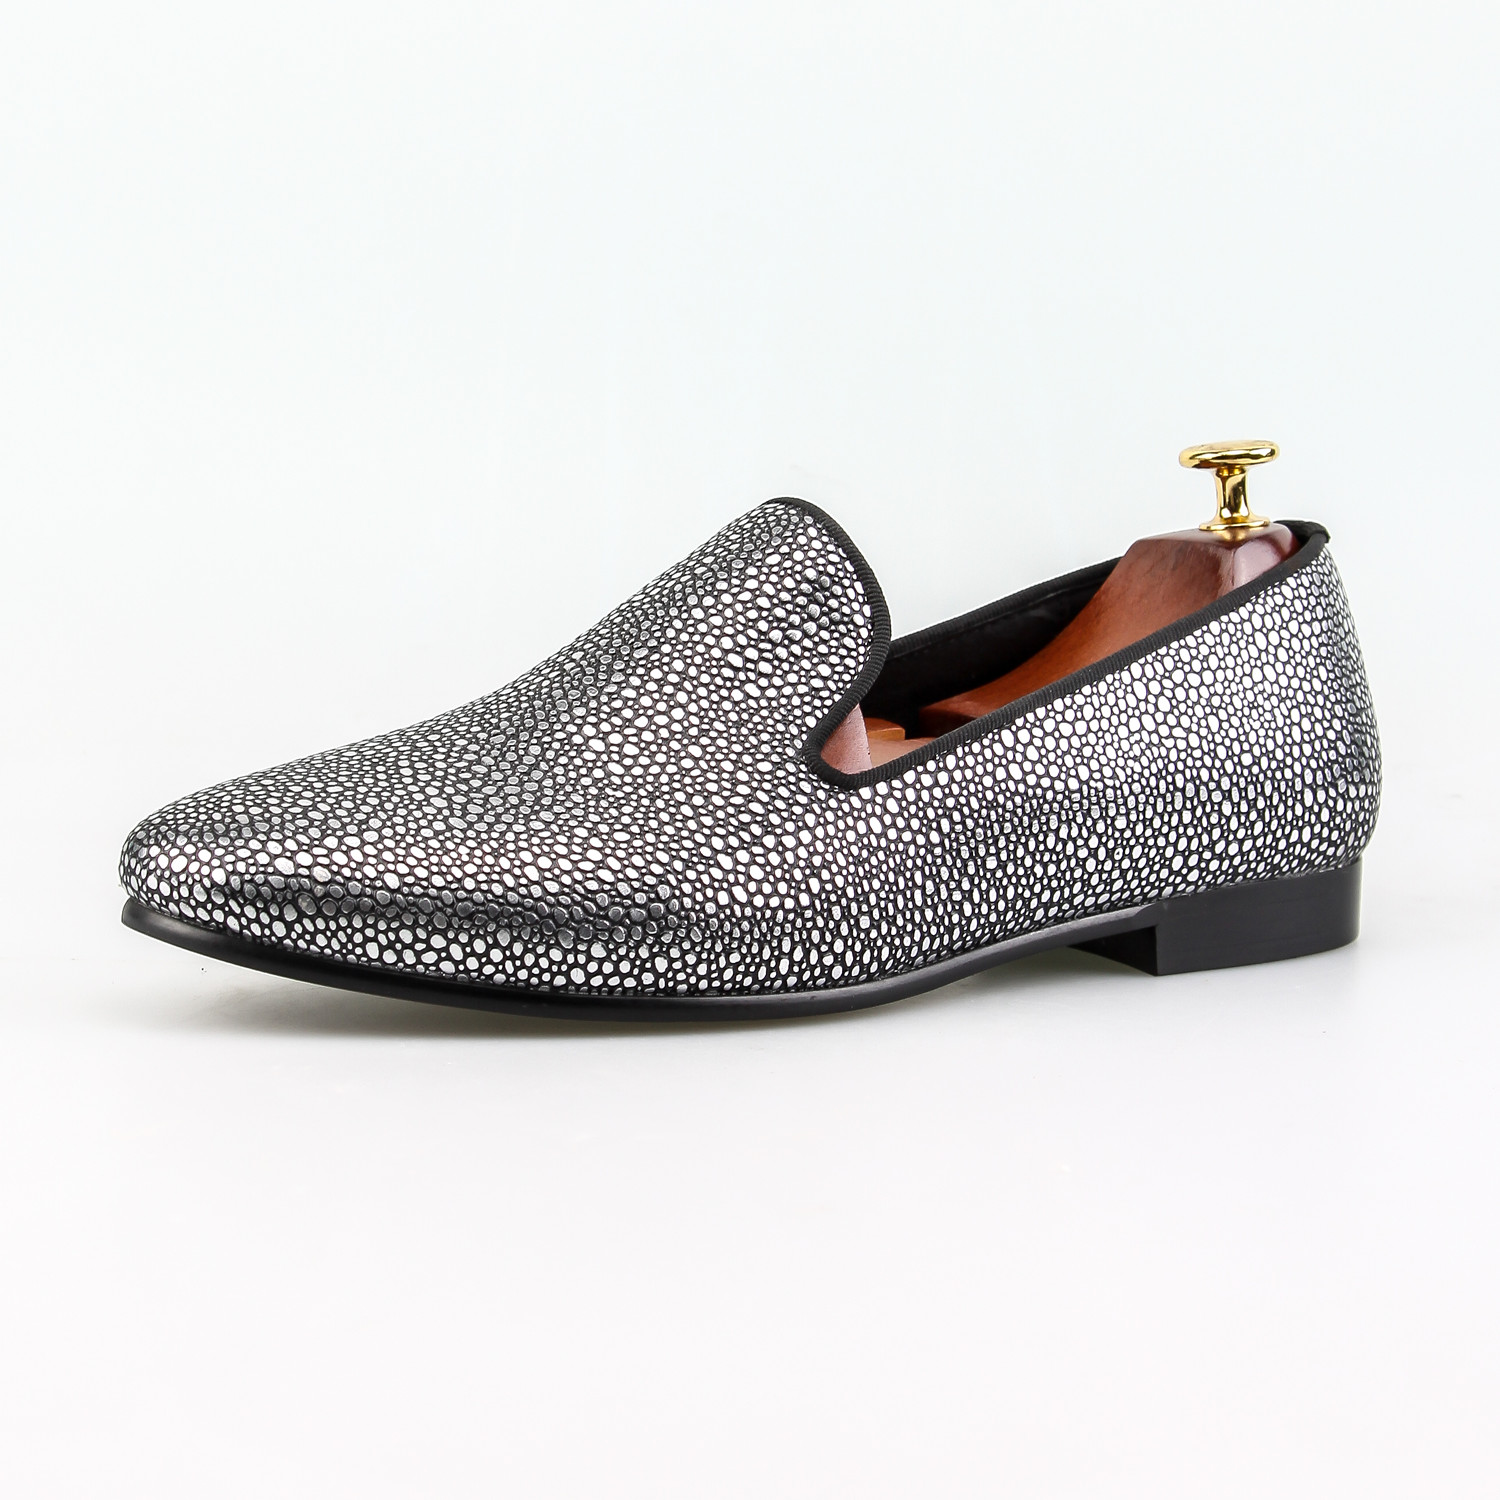 Slip On Dress Shoes Silver Pearl Men Wedding Shoes Classic Fashion Footwear Red Bottom Sole Free Drop Shipping Size 7-14 фен irit ir 3136 2000вт белый красный